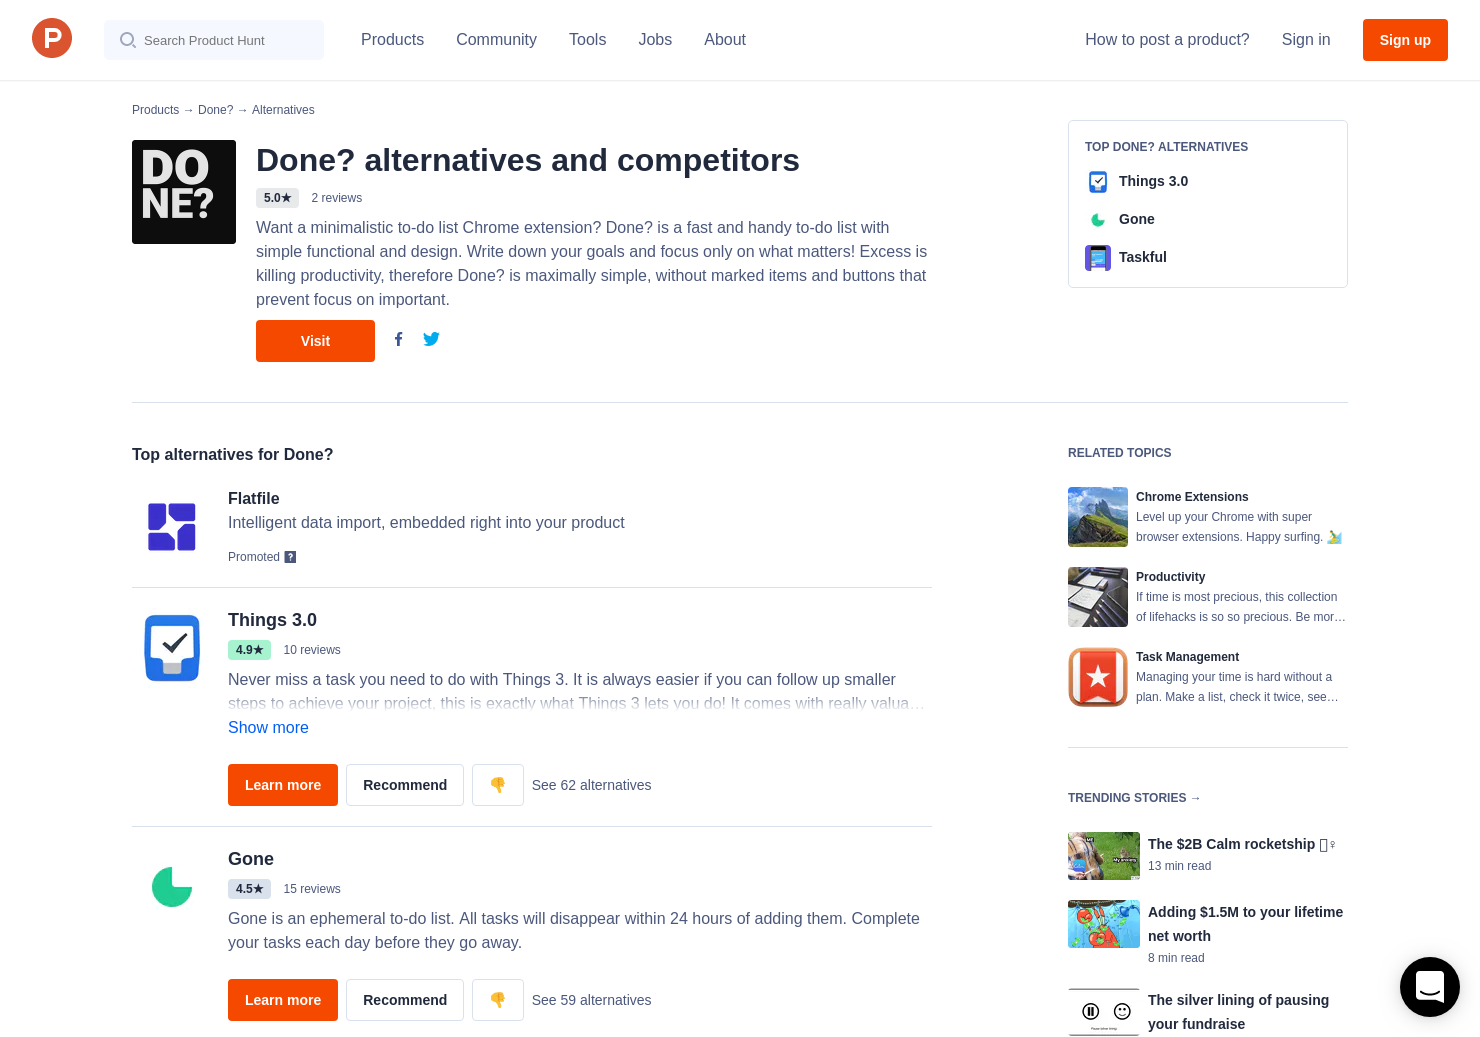 21 Alternatives to Done? for Chrome Extensions | Product Hunt